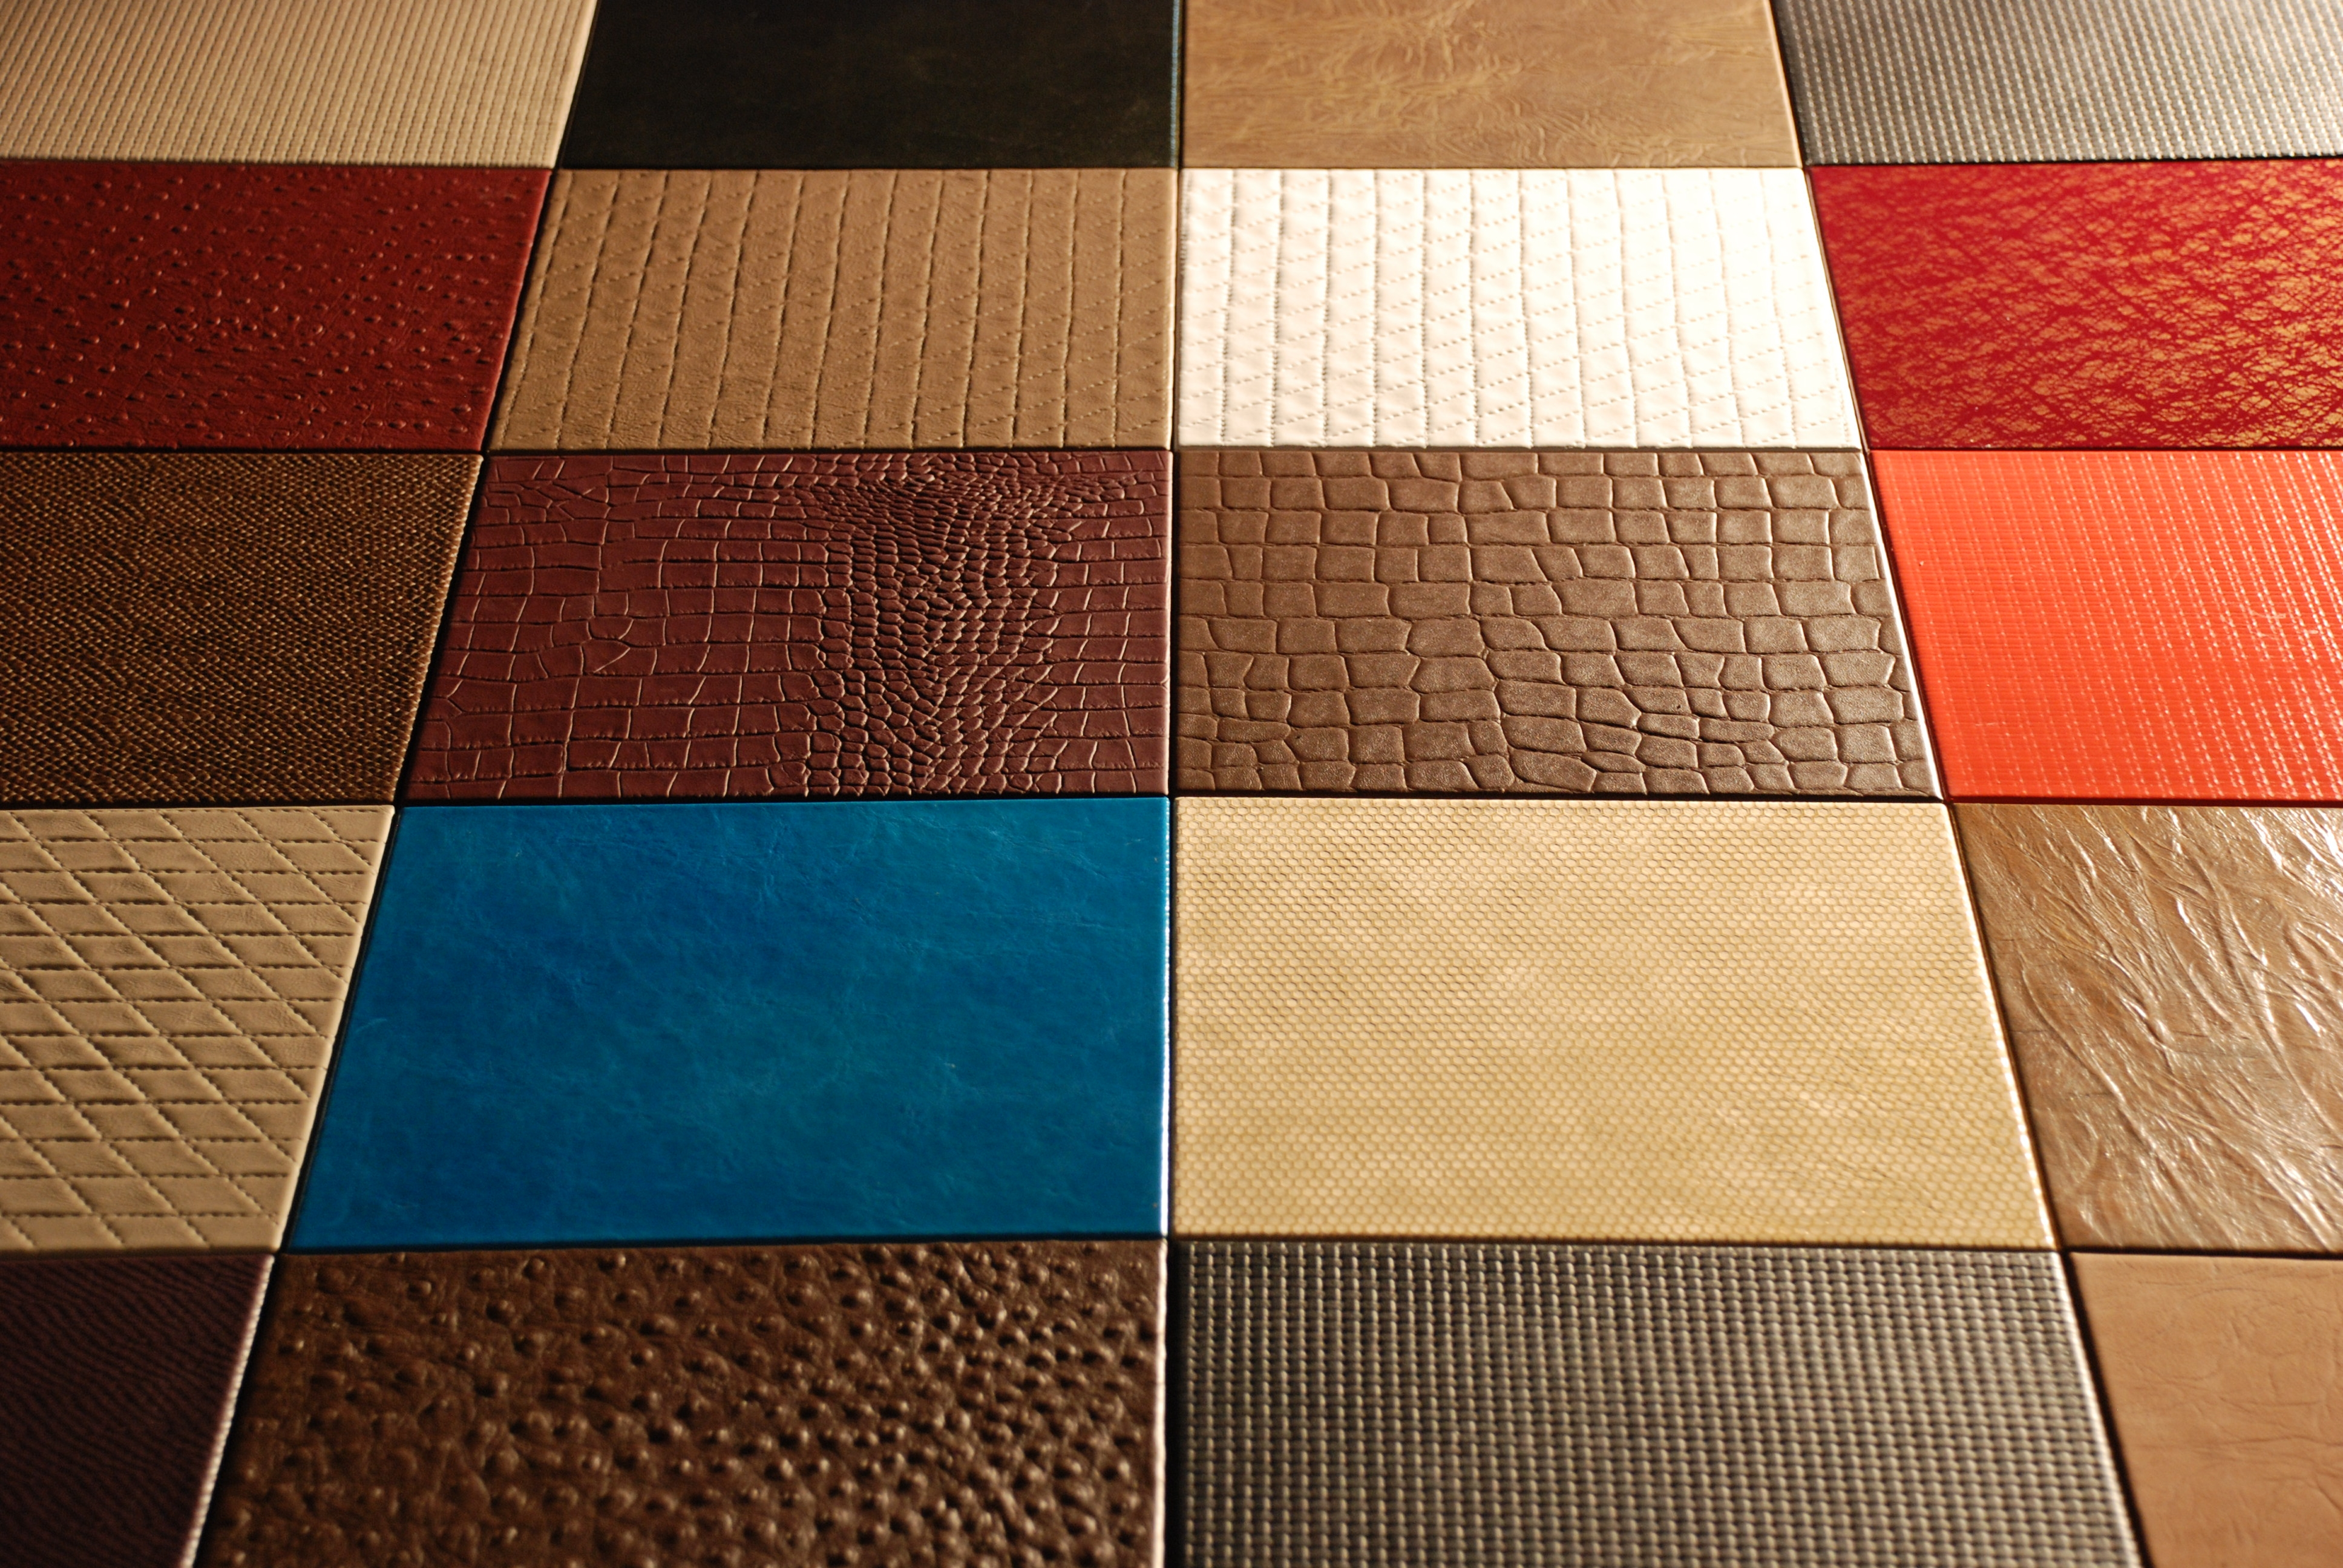 Luxury Italian leather tiles, on Designer Pages